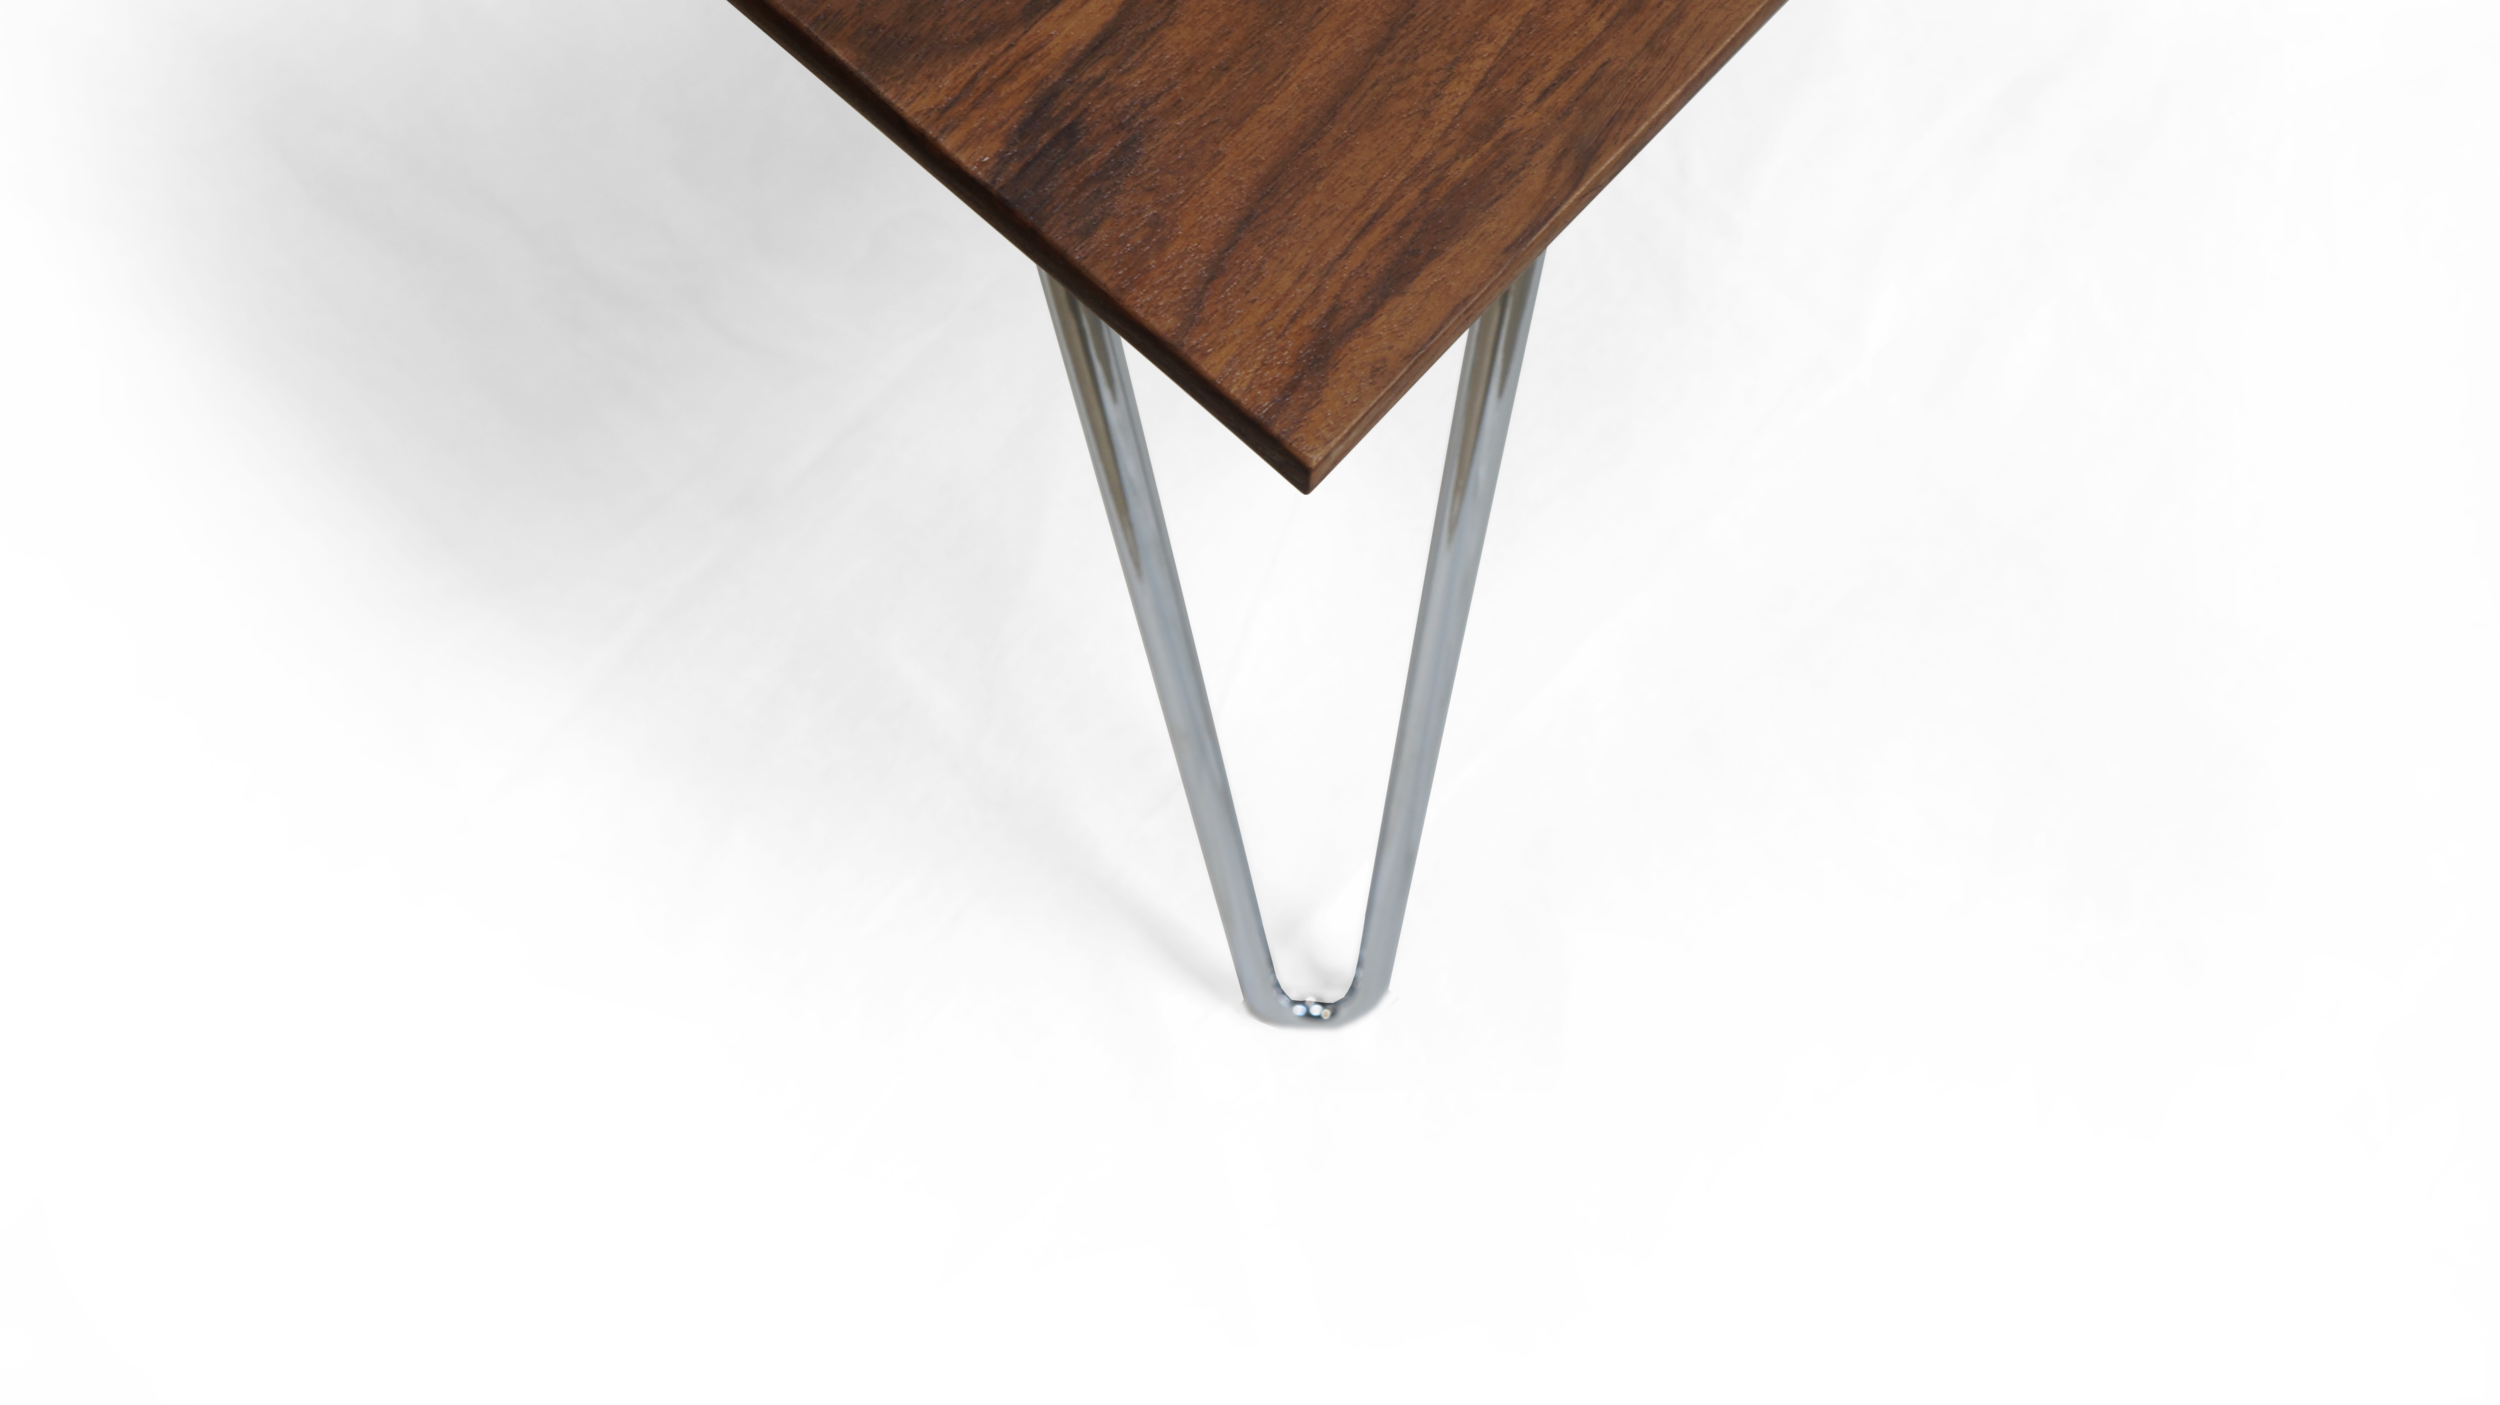 sarajevo-table-benhall-design-modern-furniture-hairpin-wood-cnc-detail-corn.png